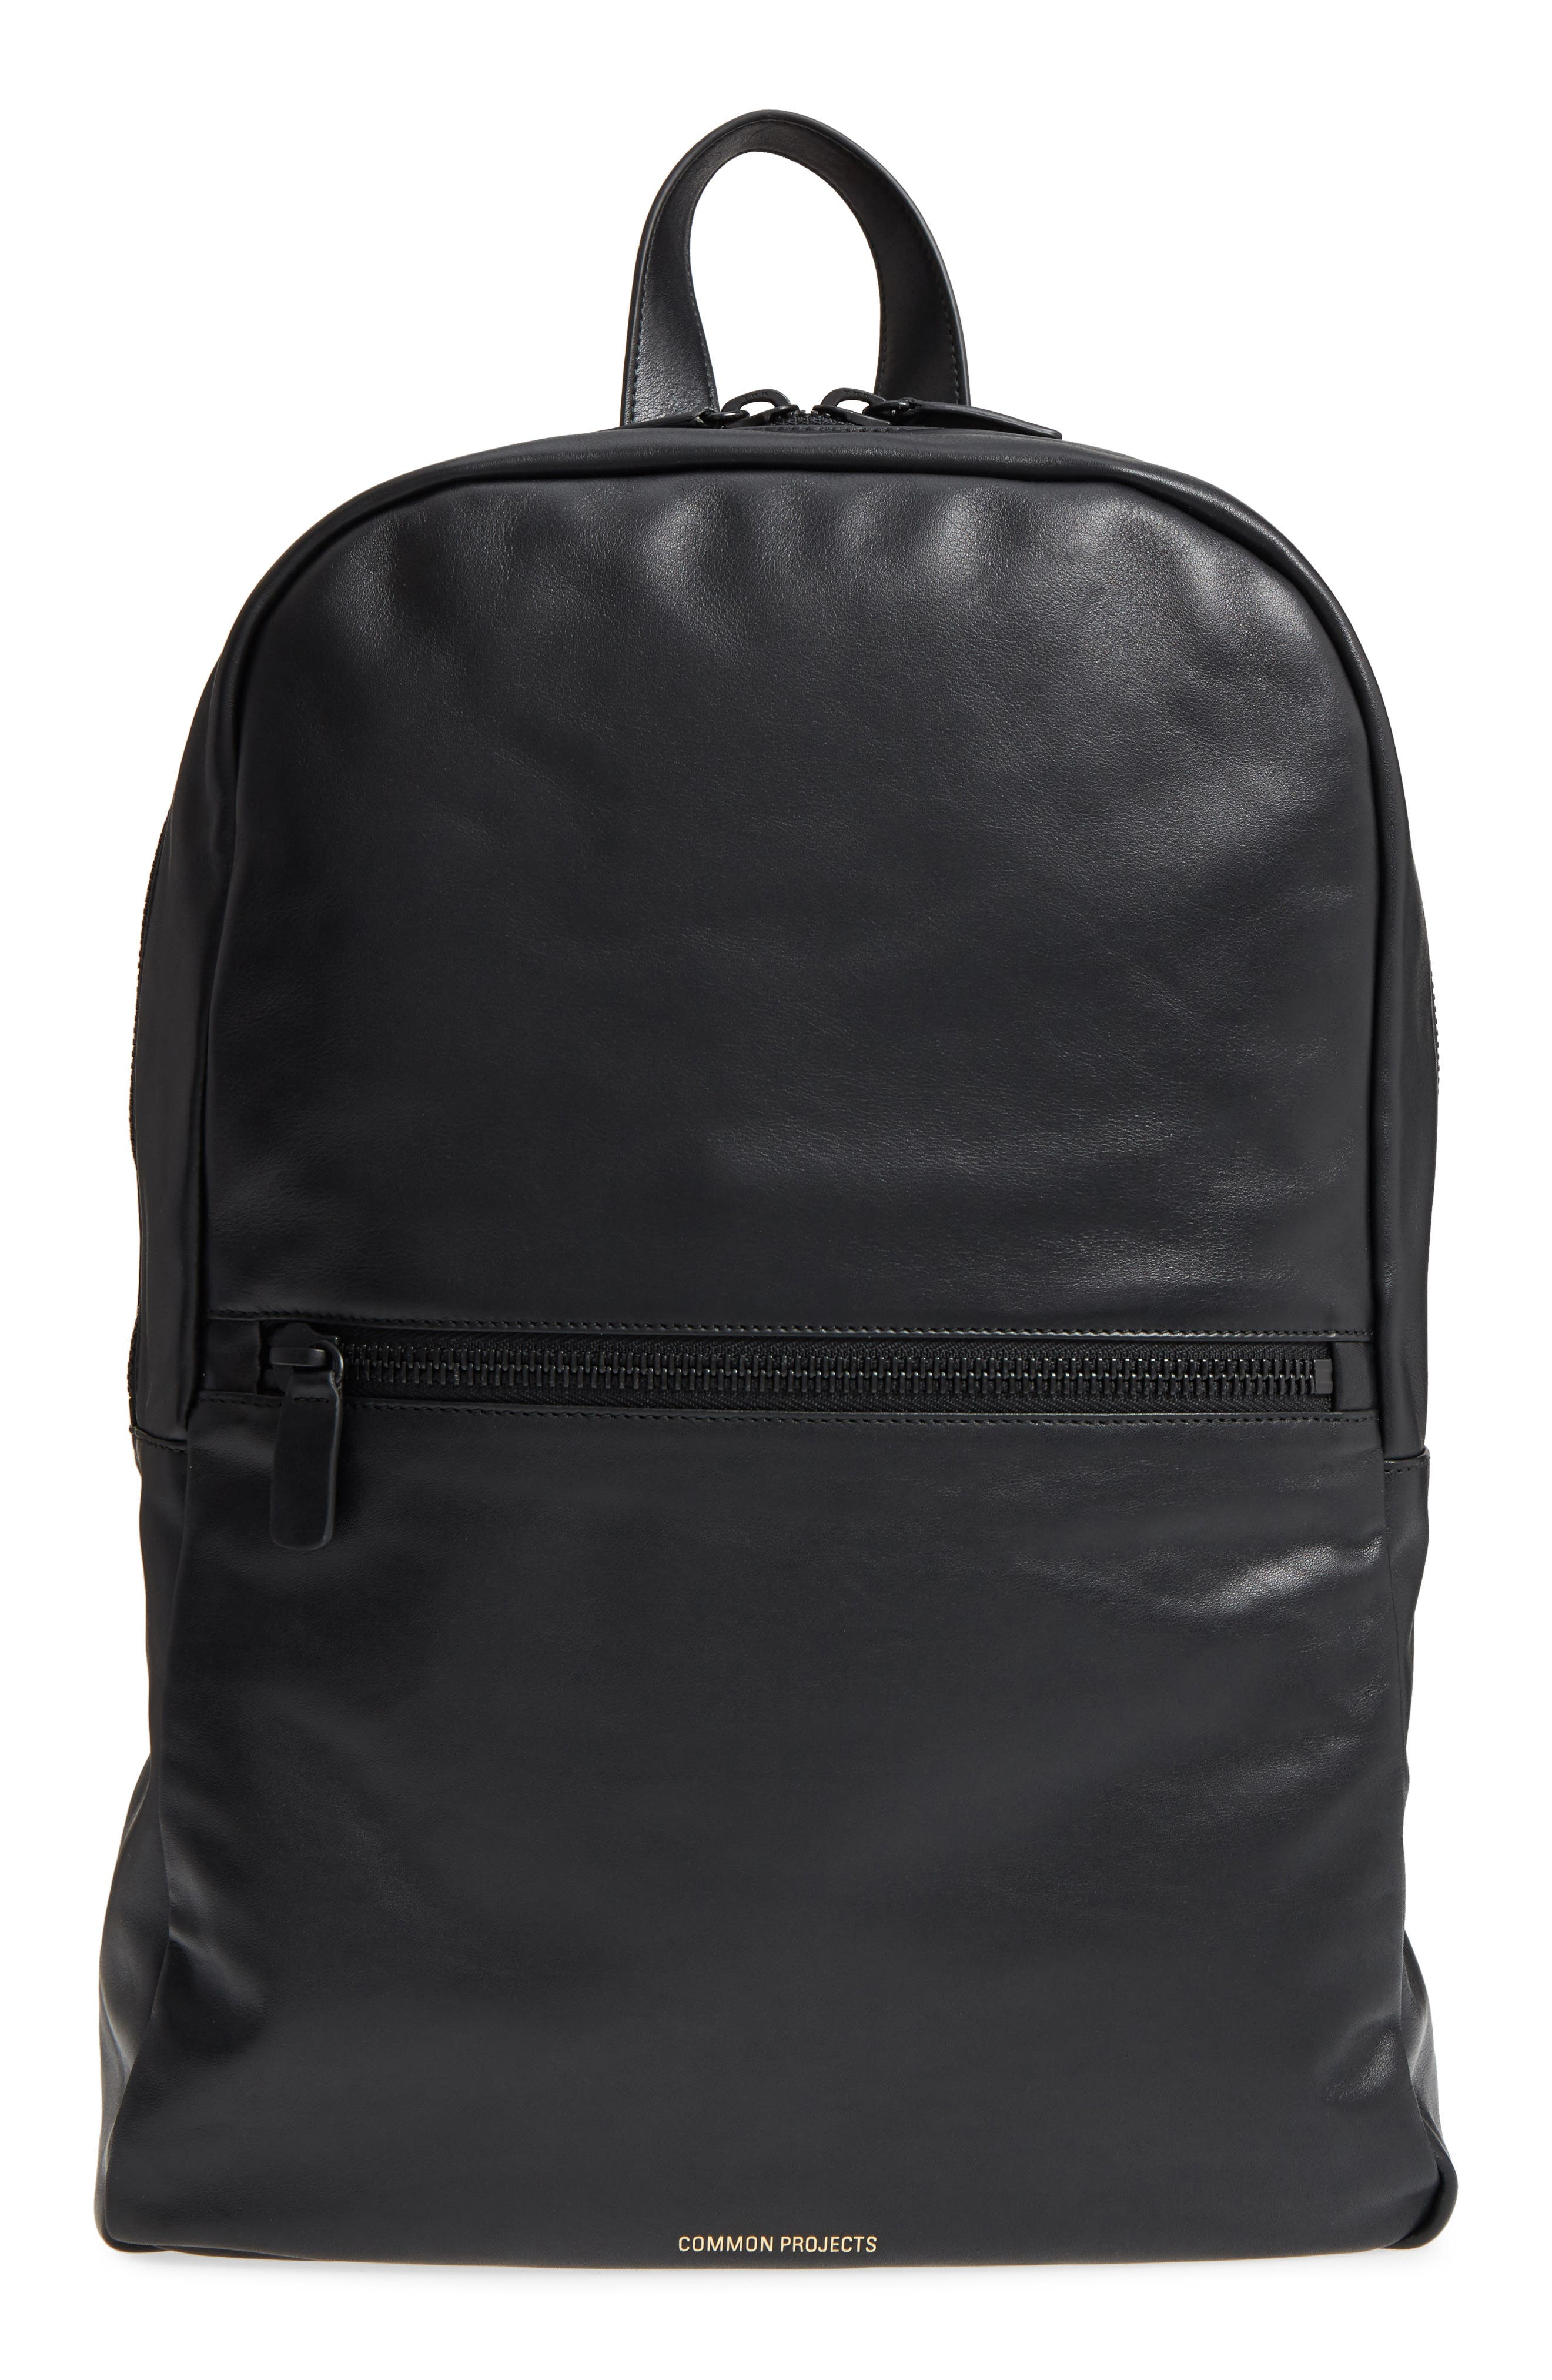 Alternate Image 1 Selected - Common Projects Soft Leather Backpack